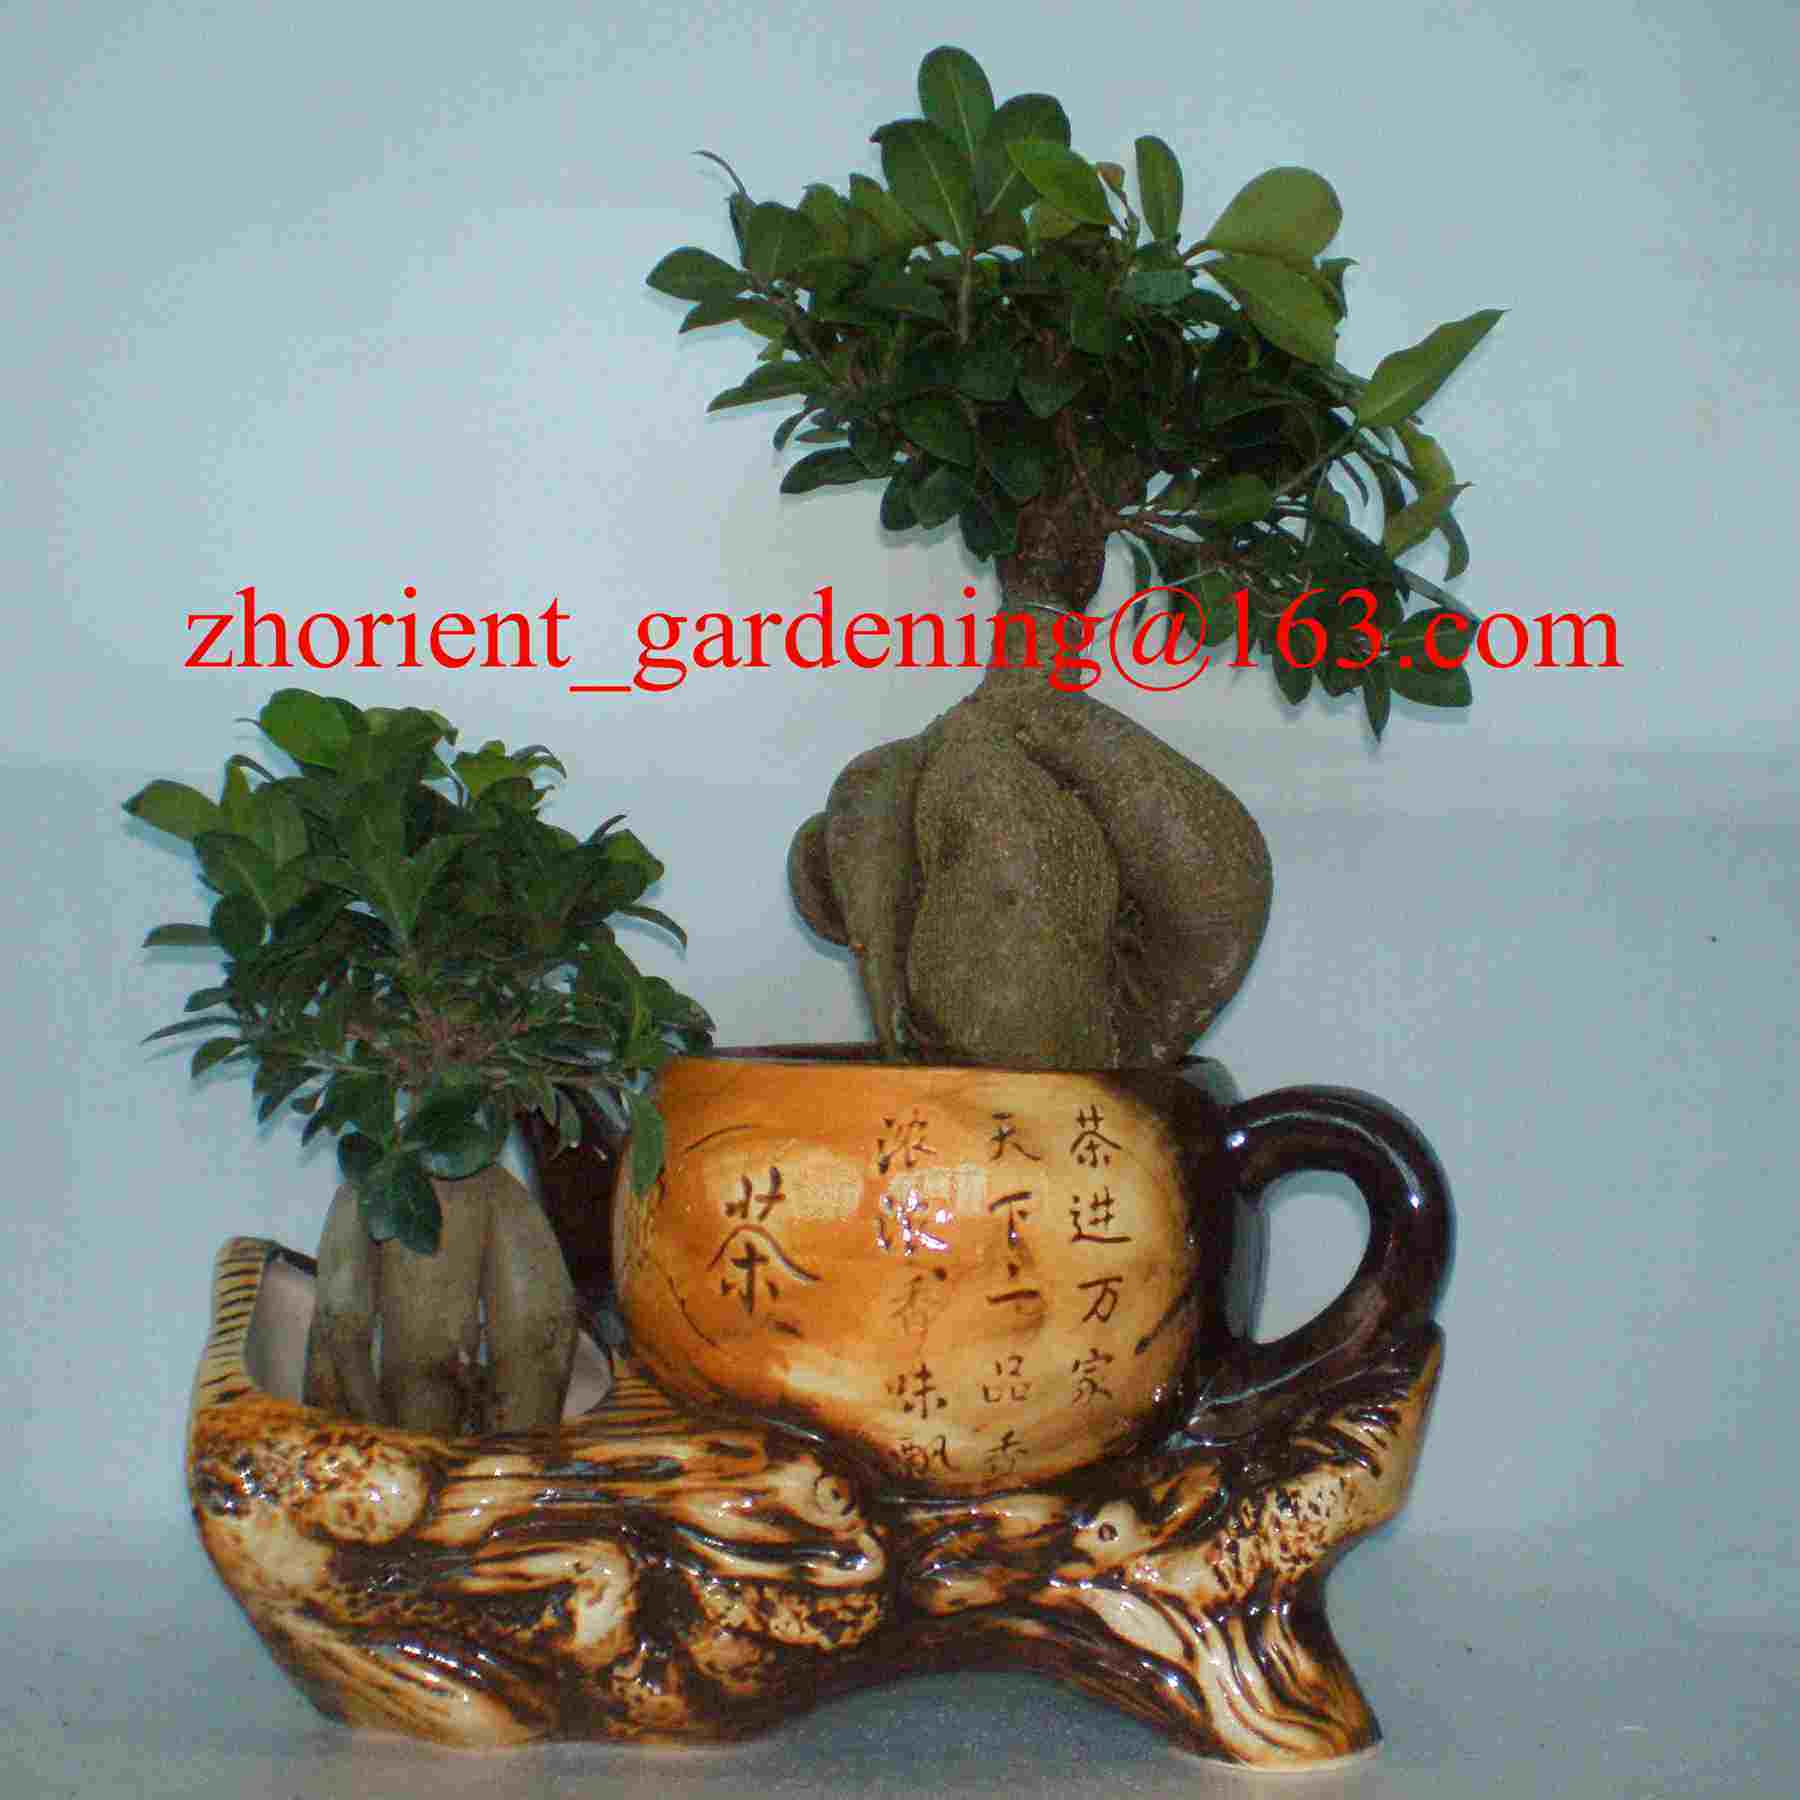 Ficus Ginseng Bonsai Hot Item Ficus Ginseng Microcarpa Mini Potted Bonsai Tree Taiwan Ficus Banyan Fig Indian Laurel Fig Indoor Ornamental Plants